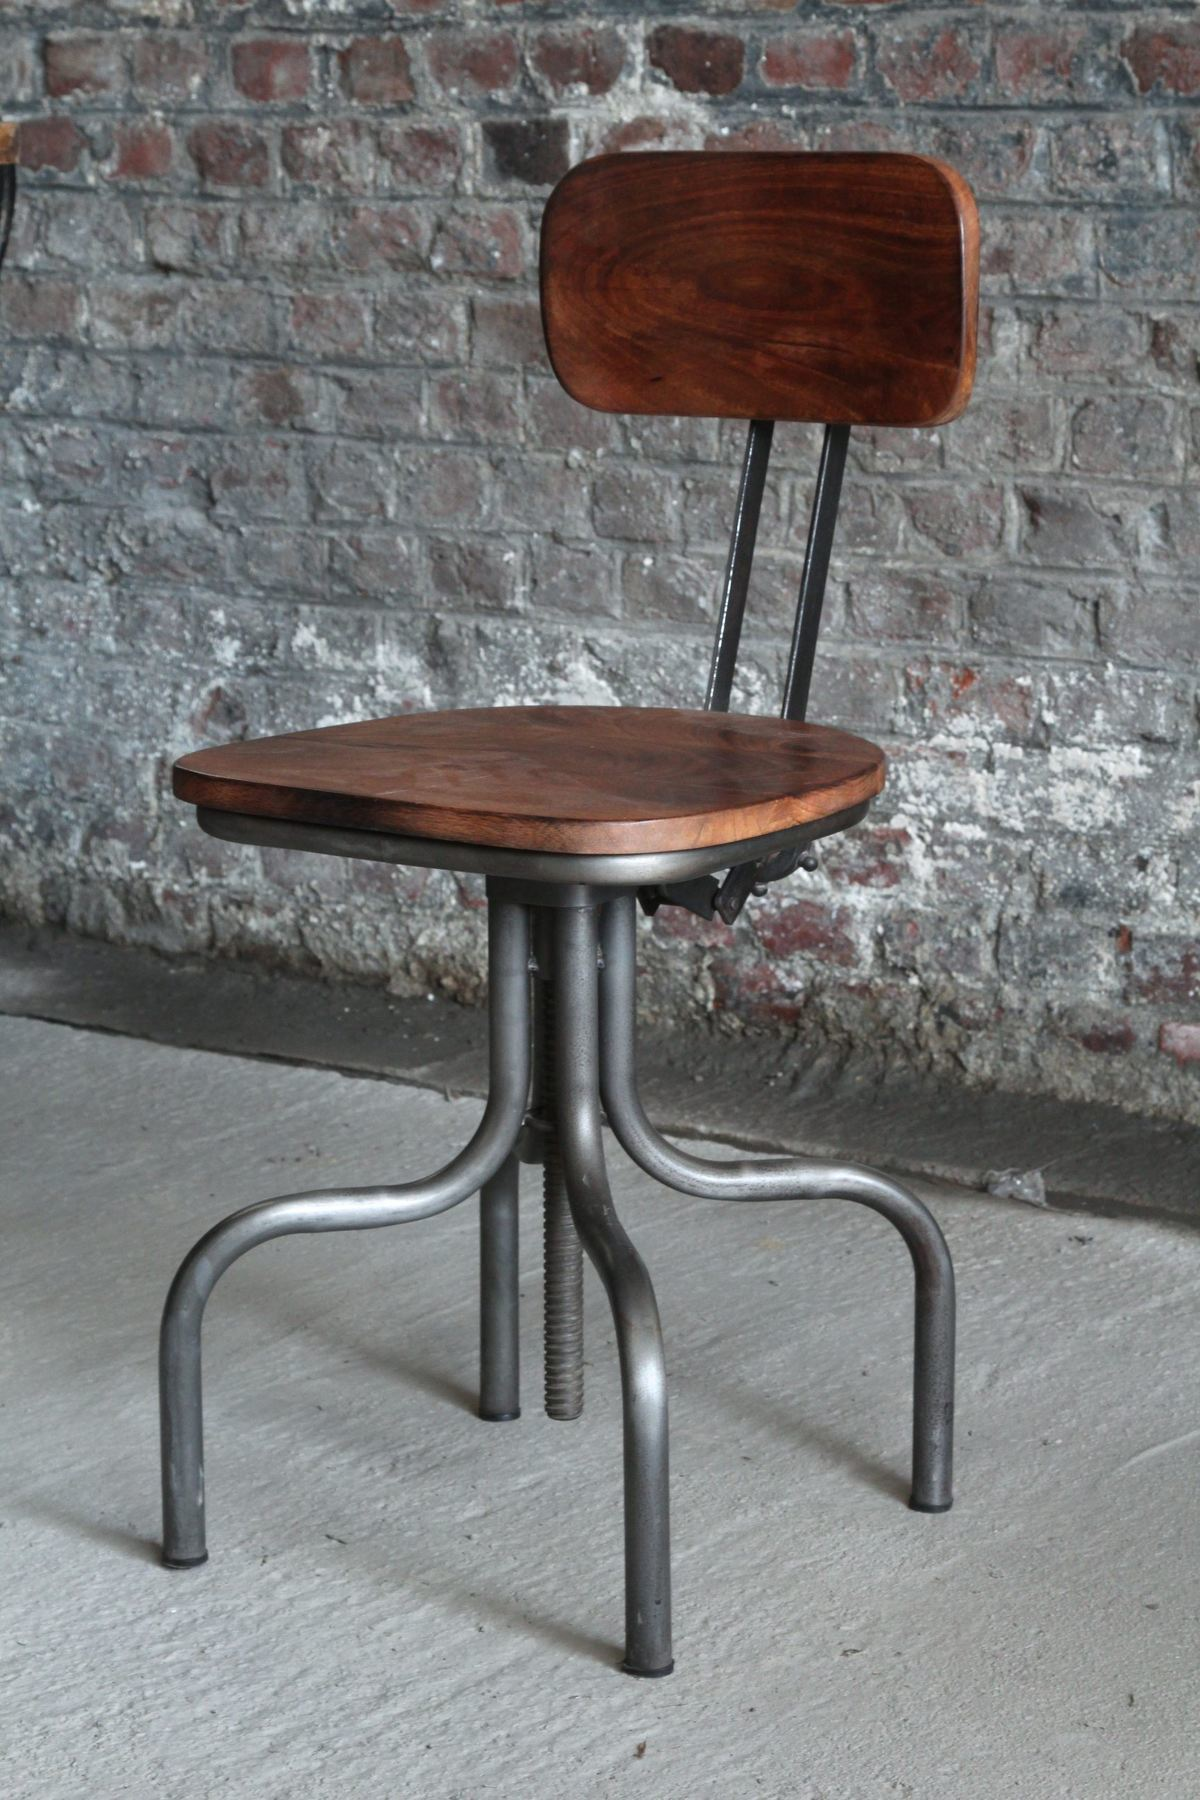 Industrial adjustable architect chair